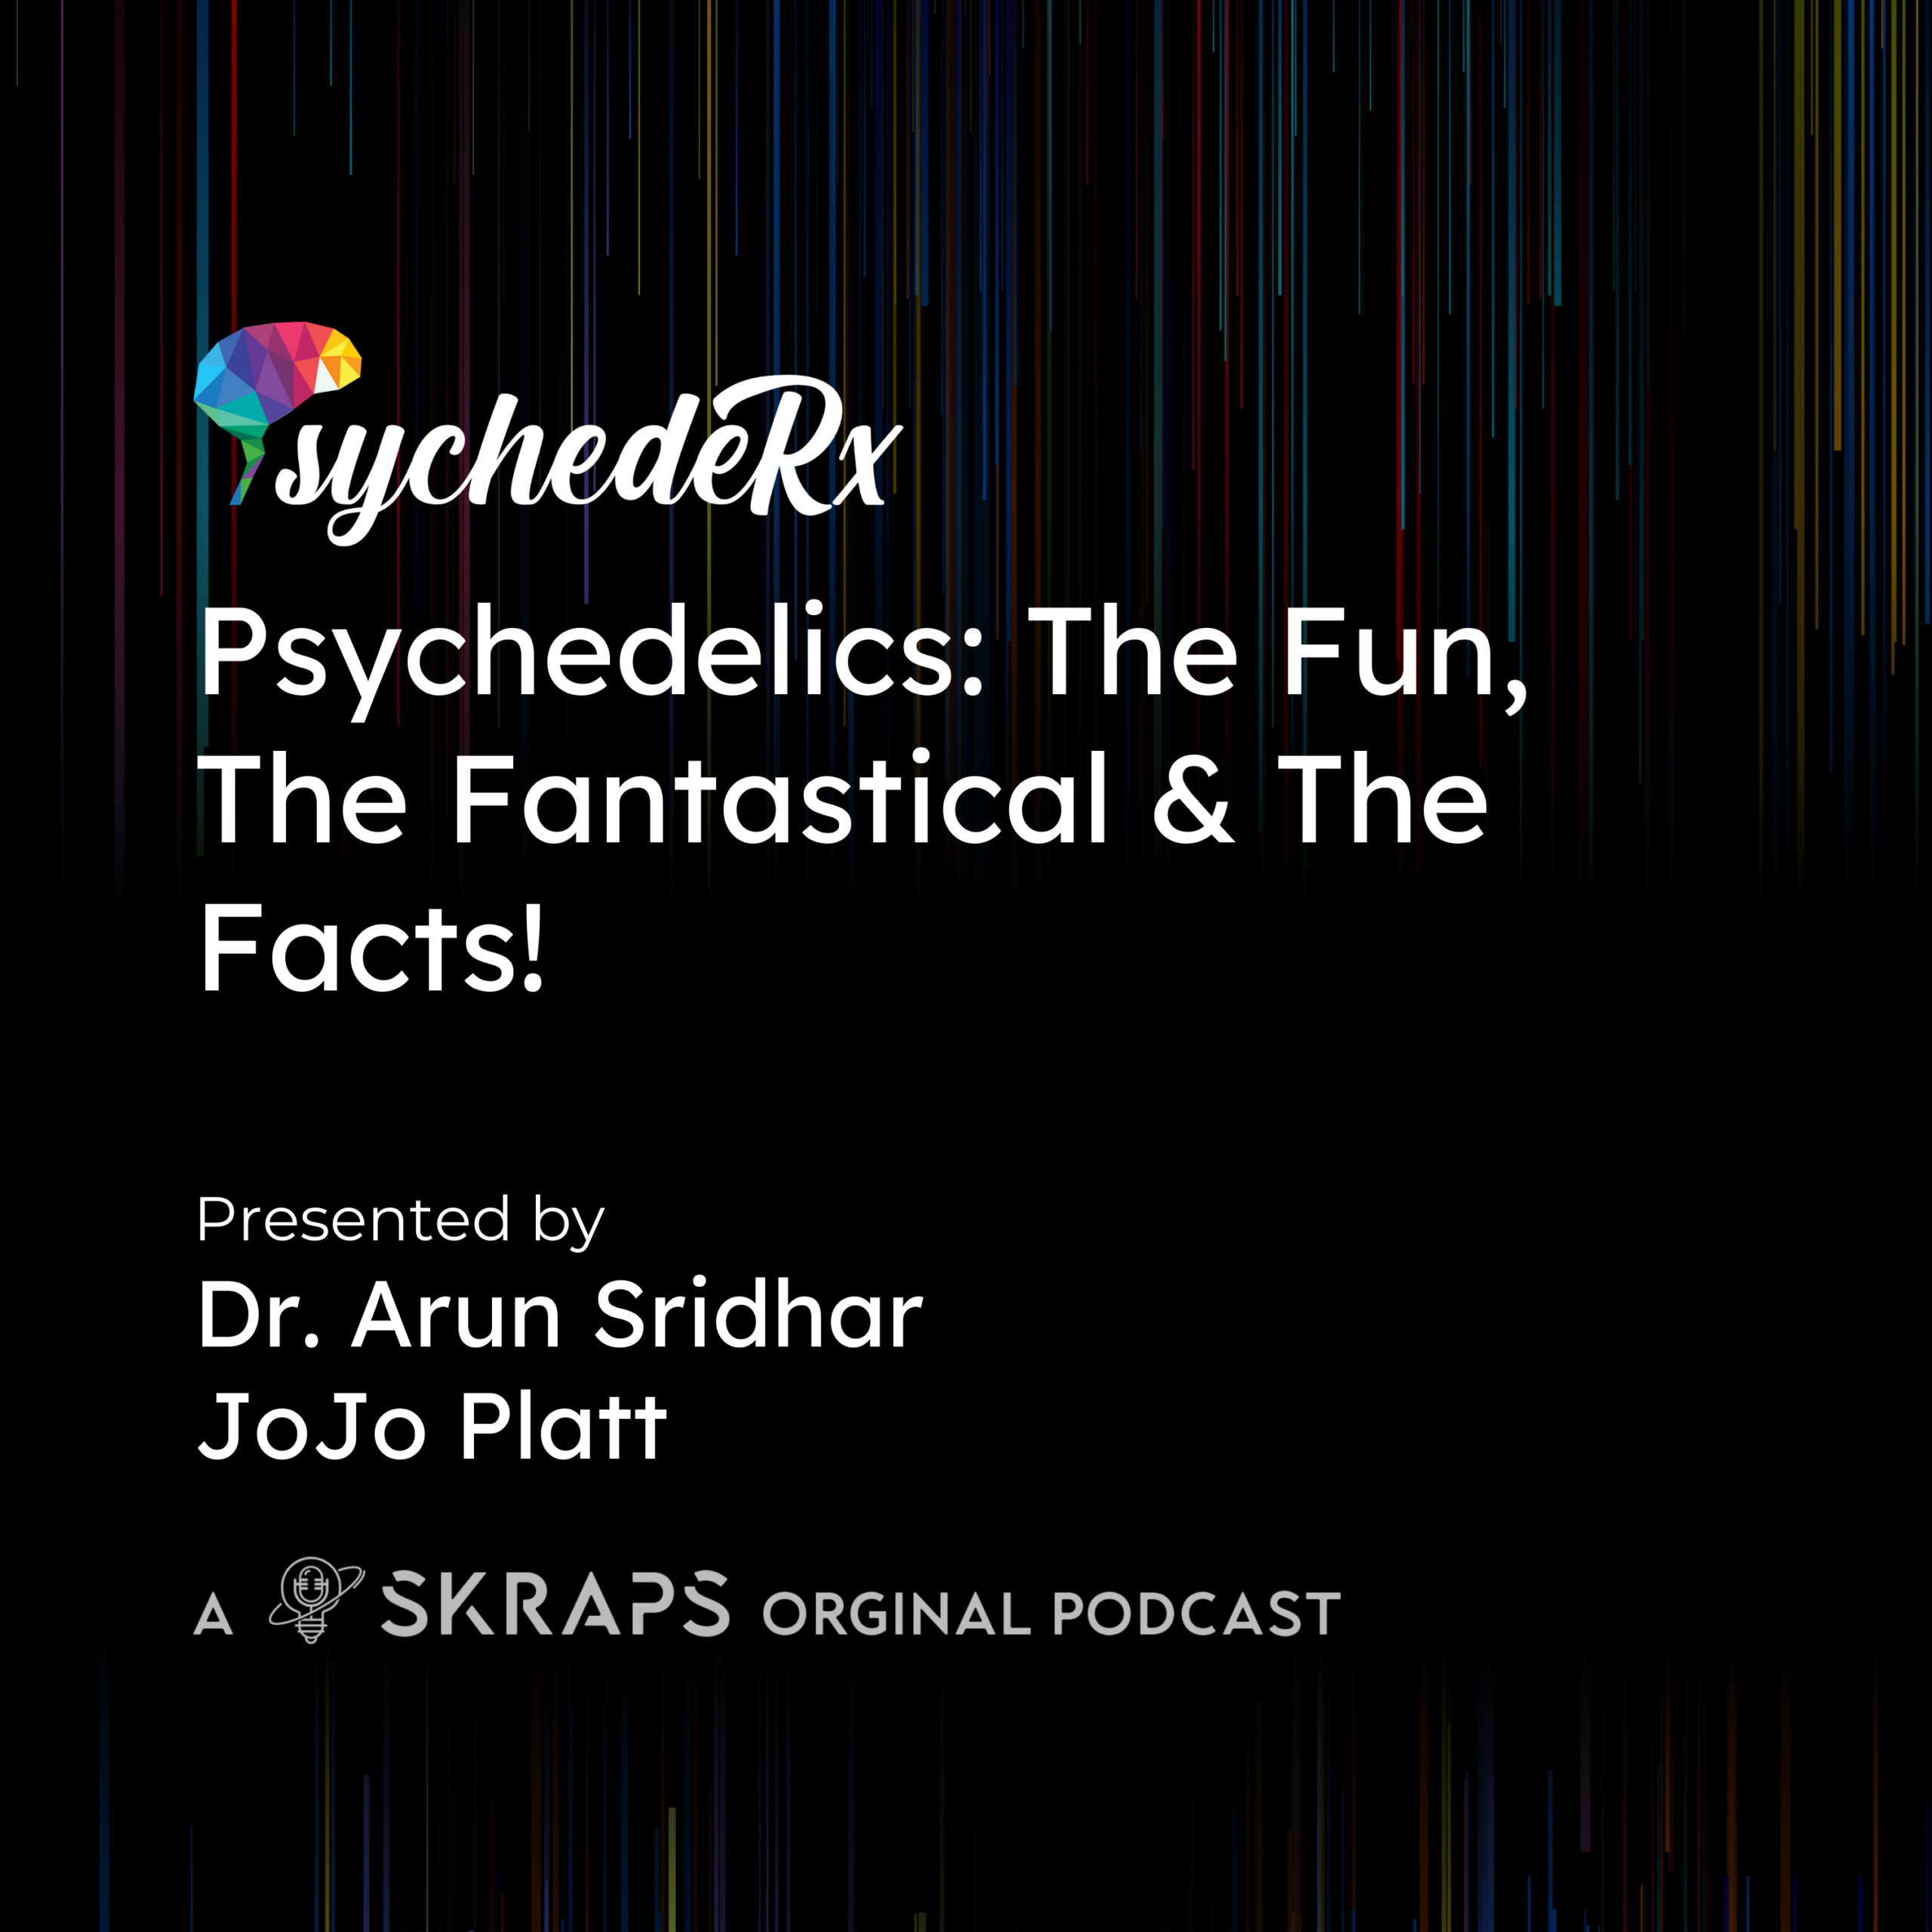 Episode 1: Psychedelics – The Fun, the Fantastical & the Facts